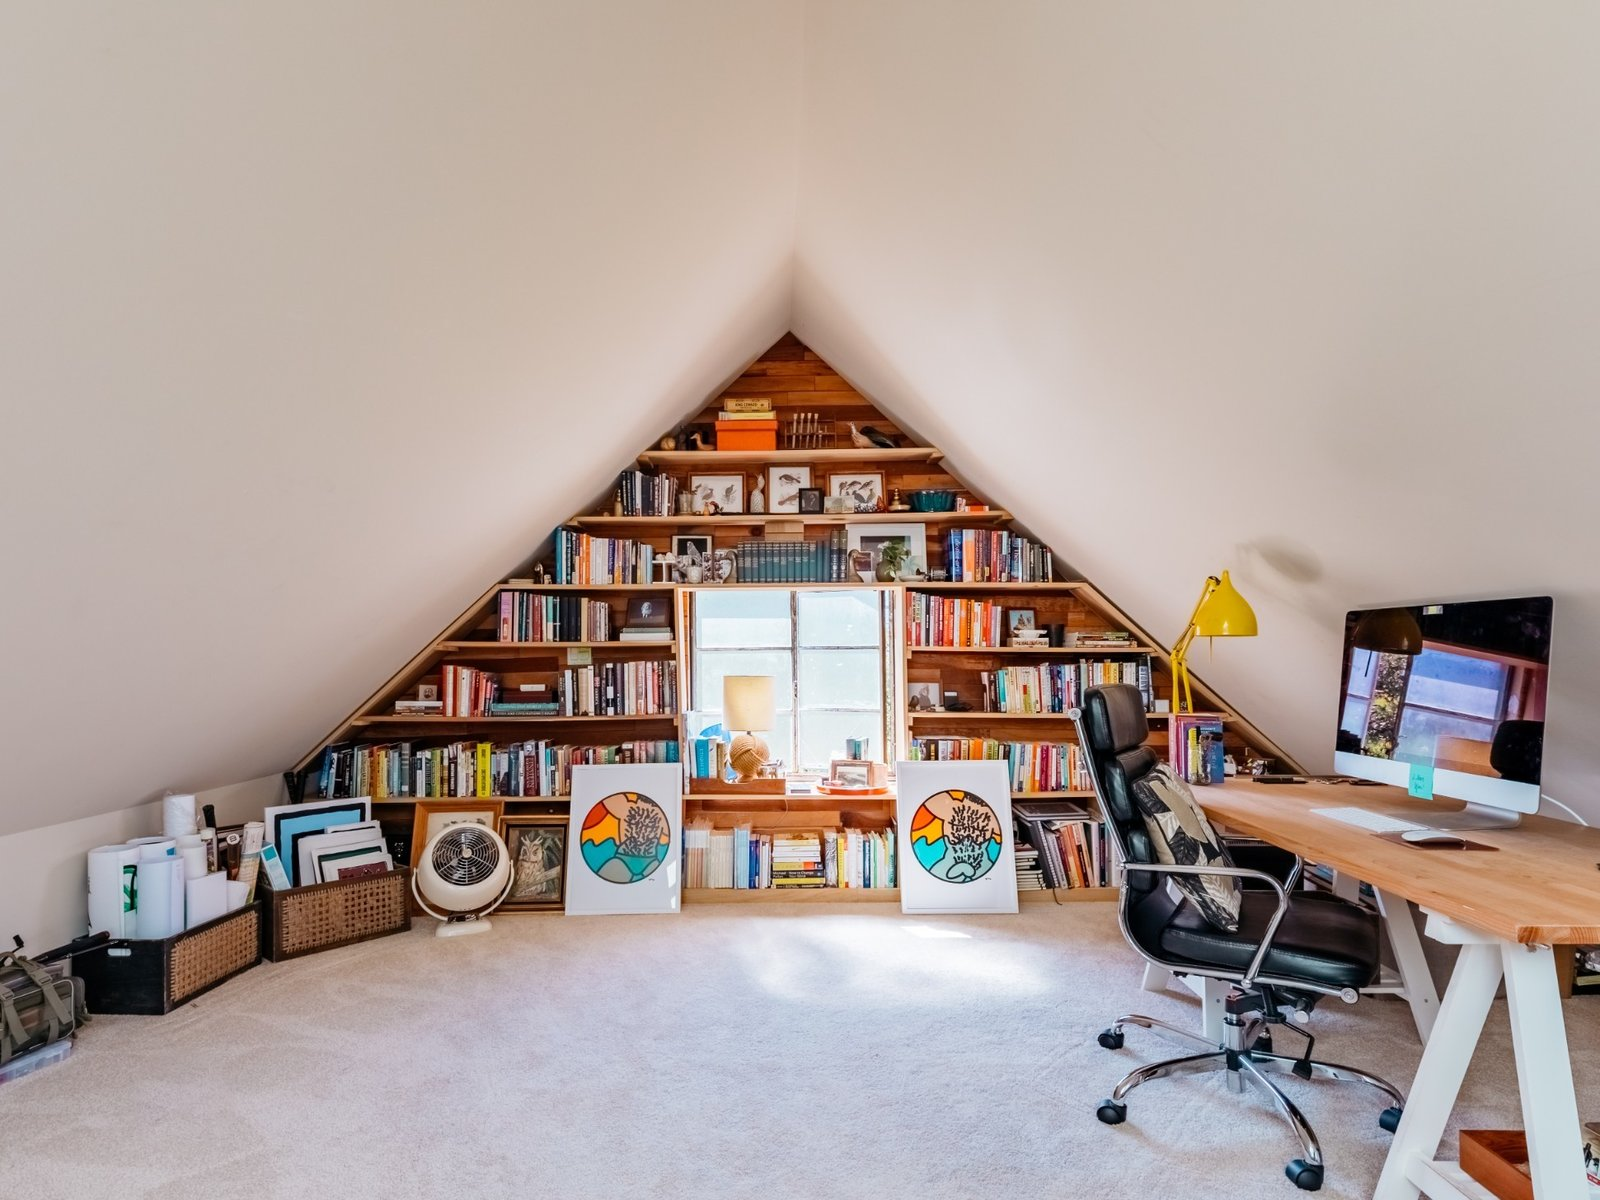 The upstairs attic serves as her boyfriend's office, where he often sits to write or exercise on his rowing machine. (Sothear Nuon)